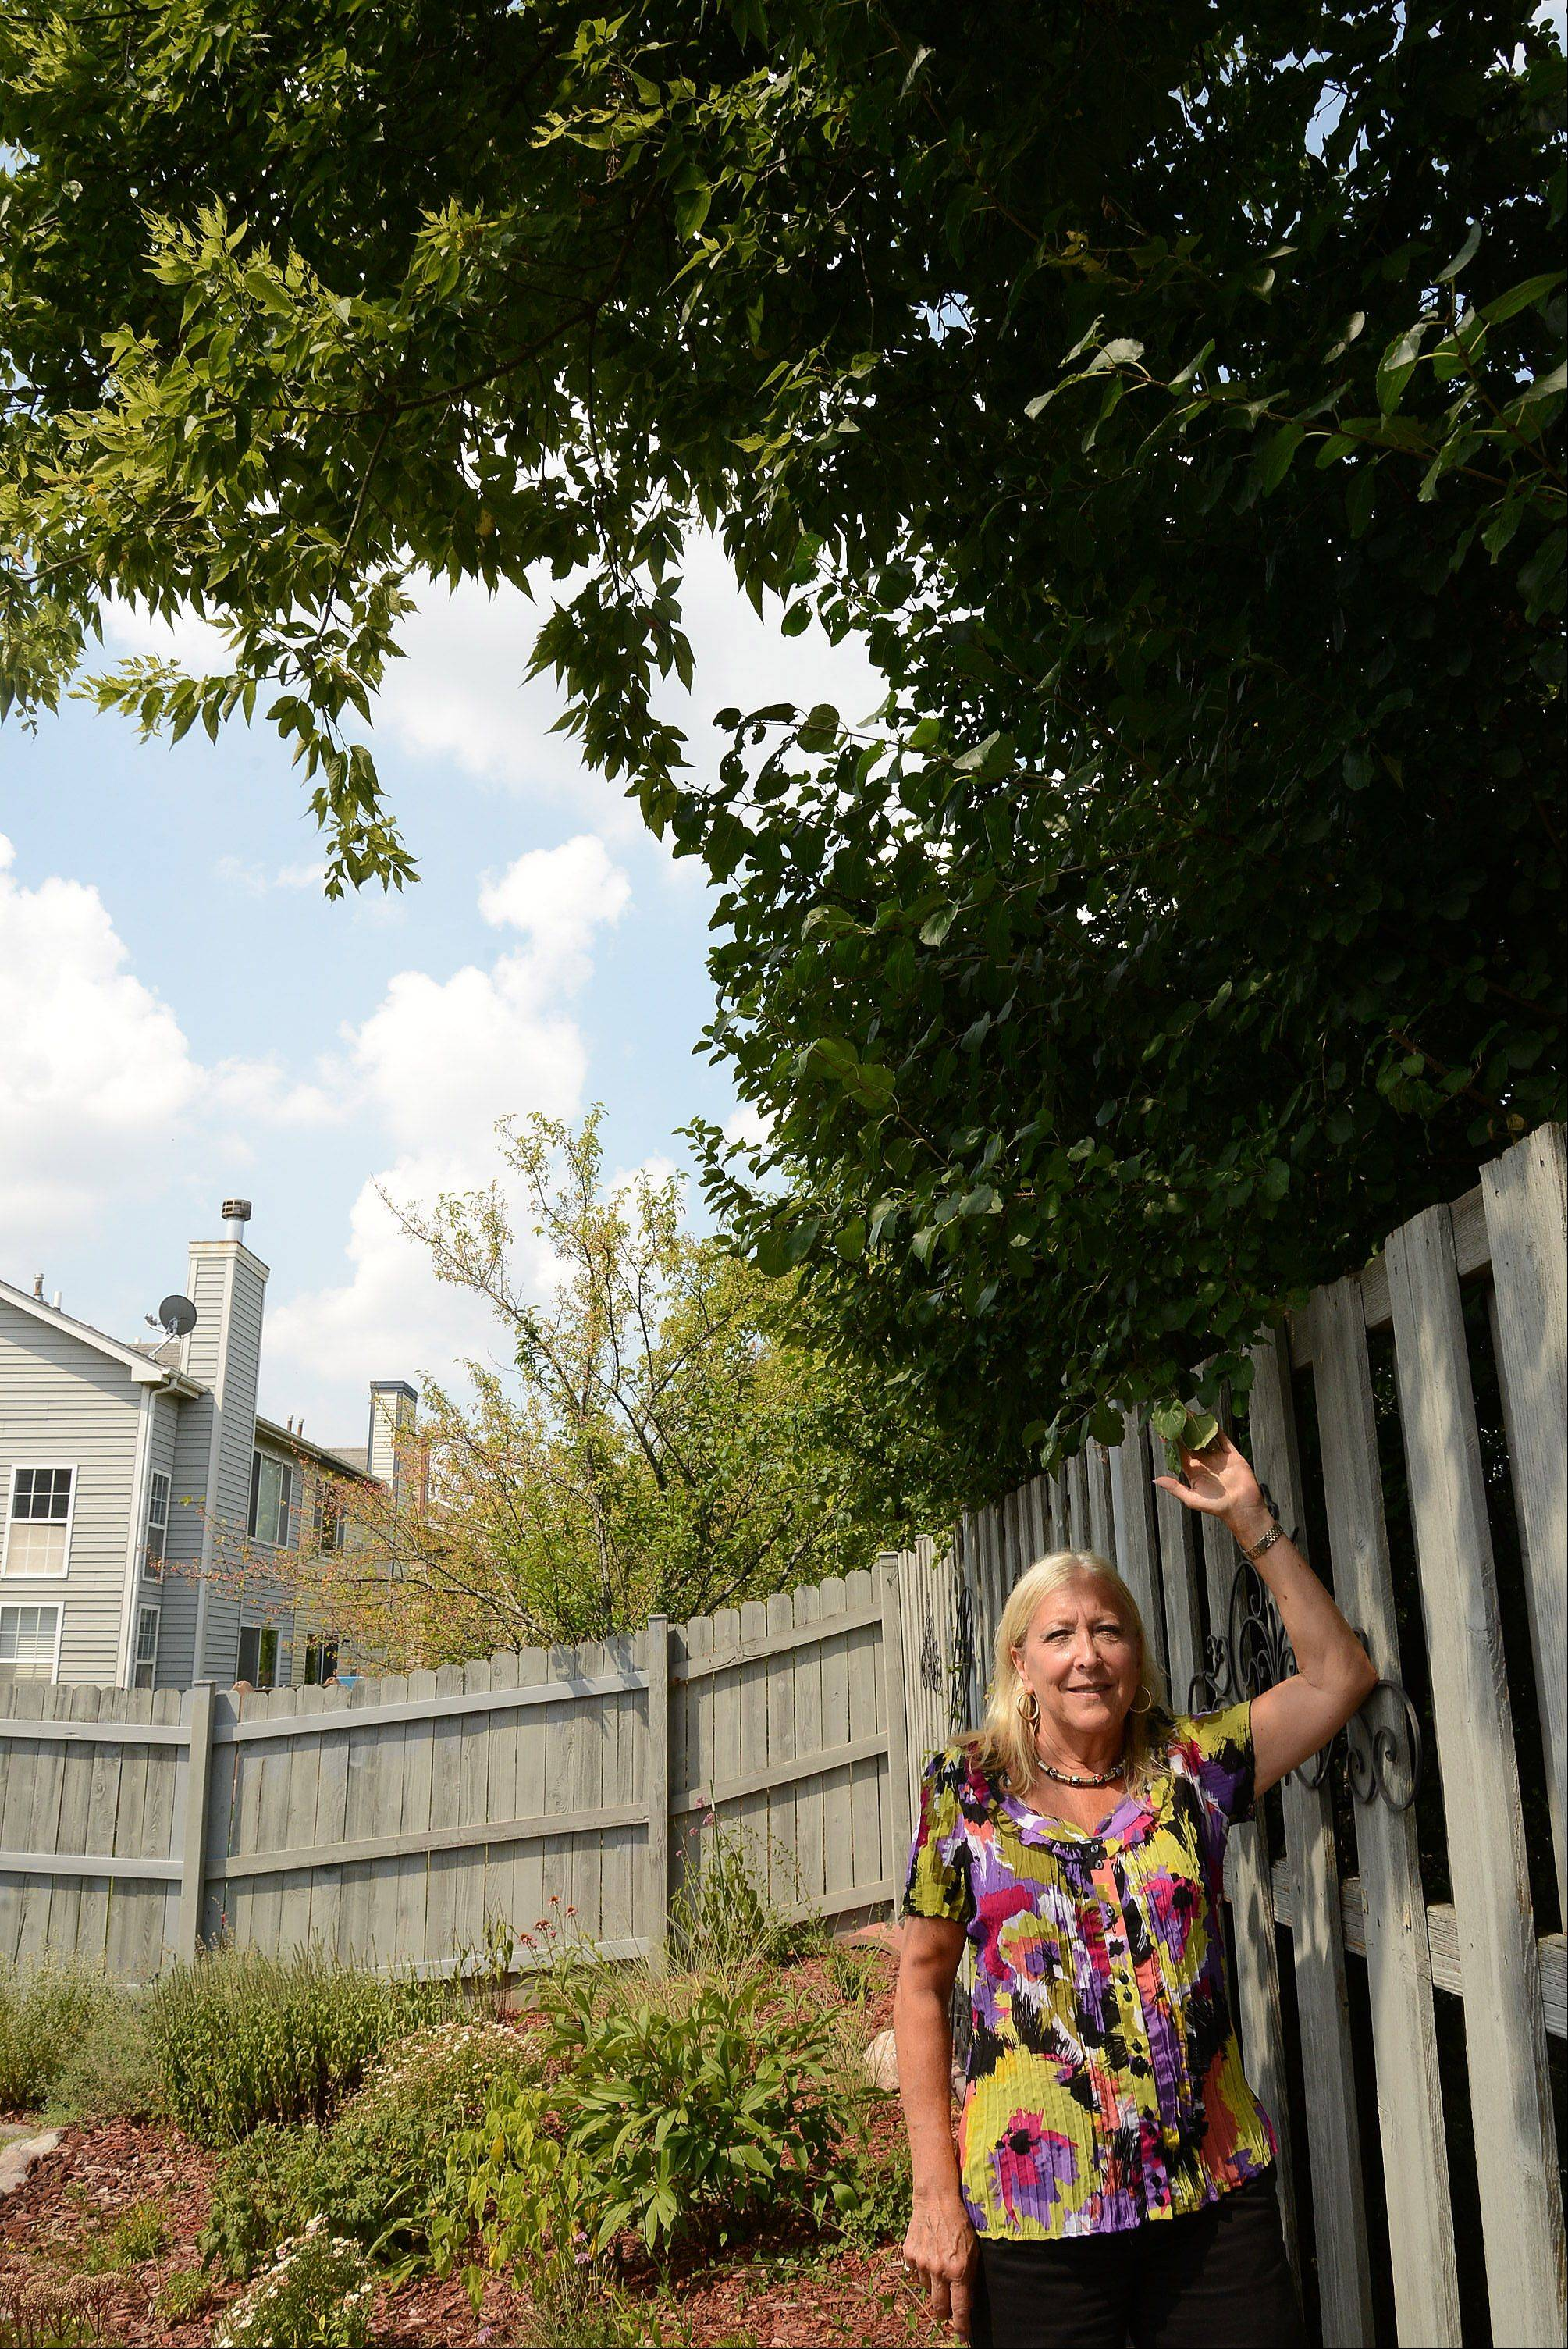 The weedy trees belong to the business next door, but Illinois law says the limbs hanging over the fence and stretching into Robin Sachs� Mundelein yard are legally her responsibility.